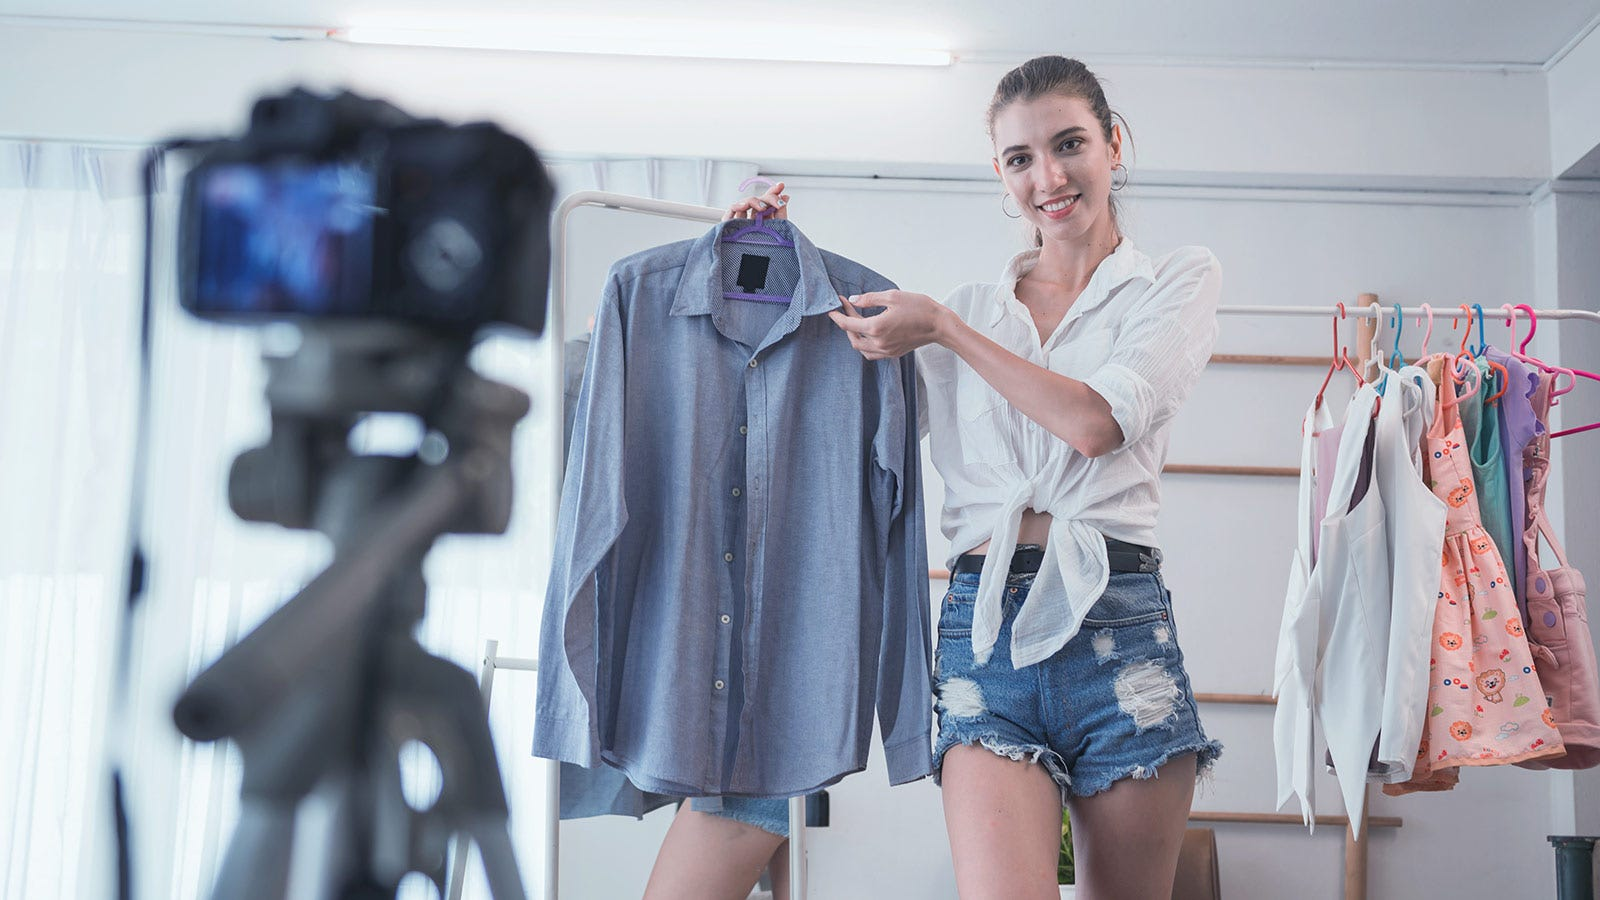 A young girl holding a shirt in front of a camera on a tripod to sell it online..